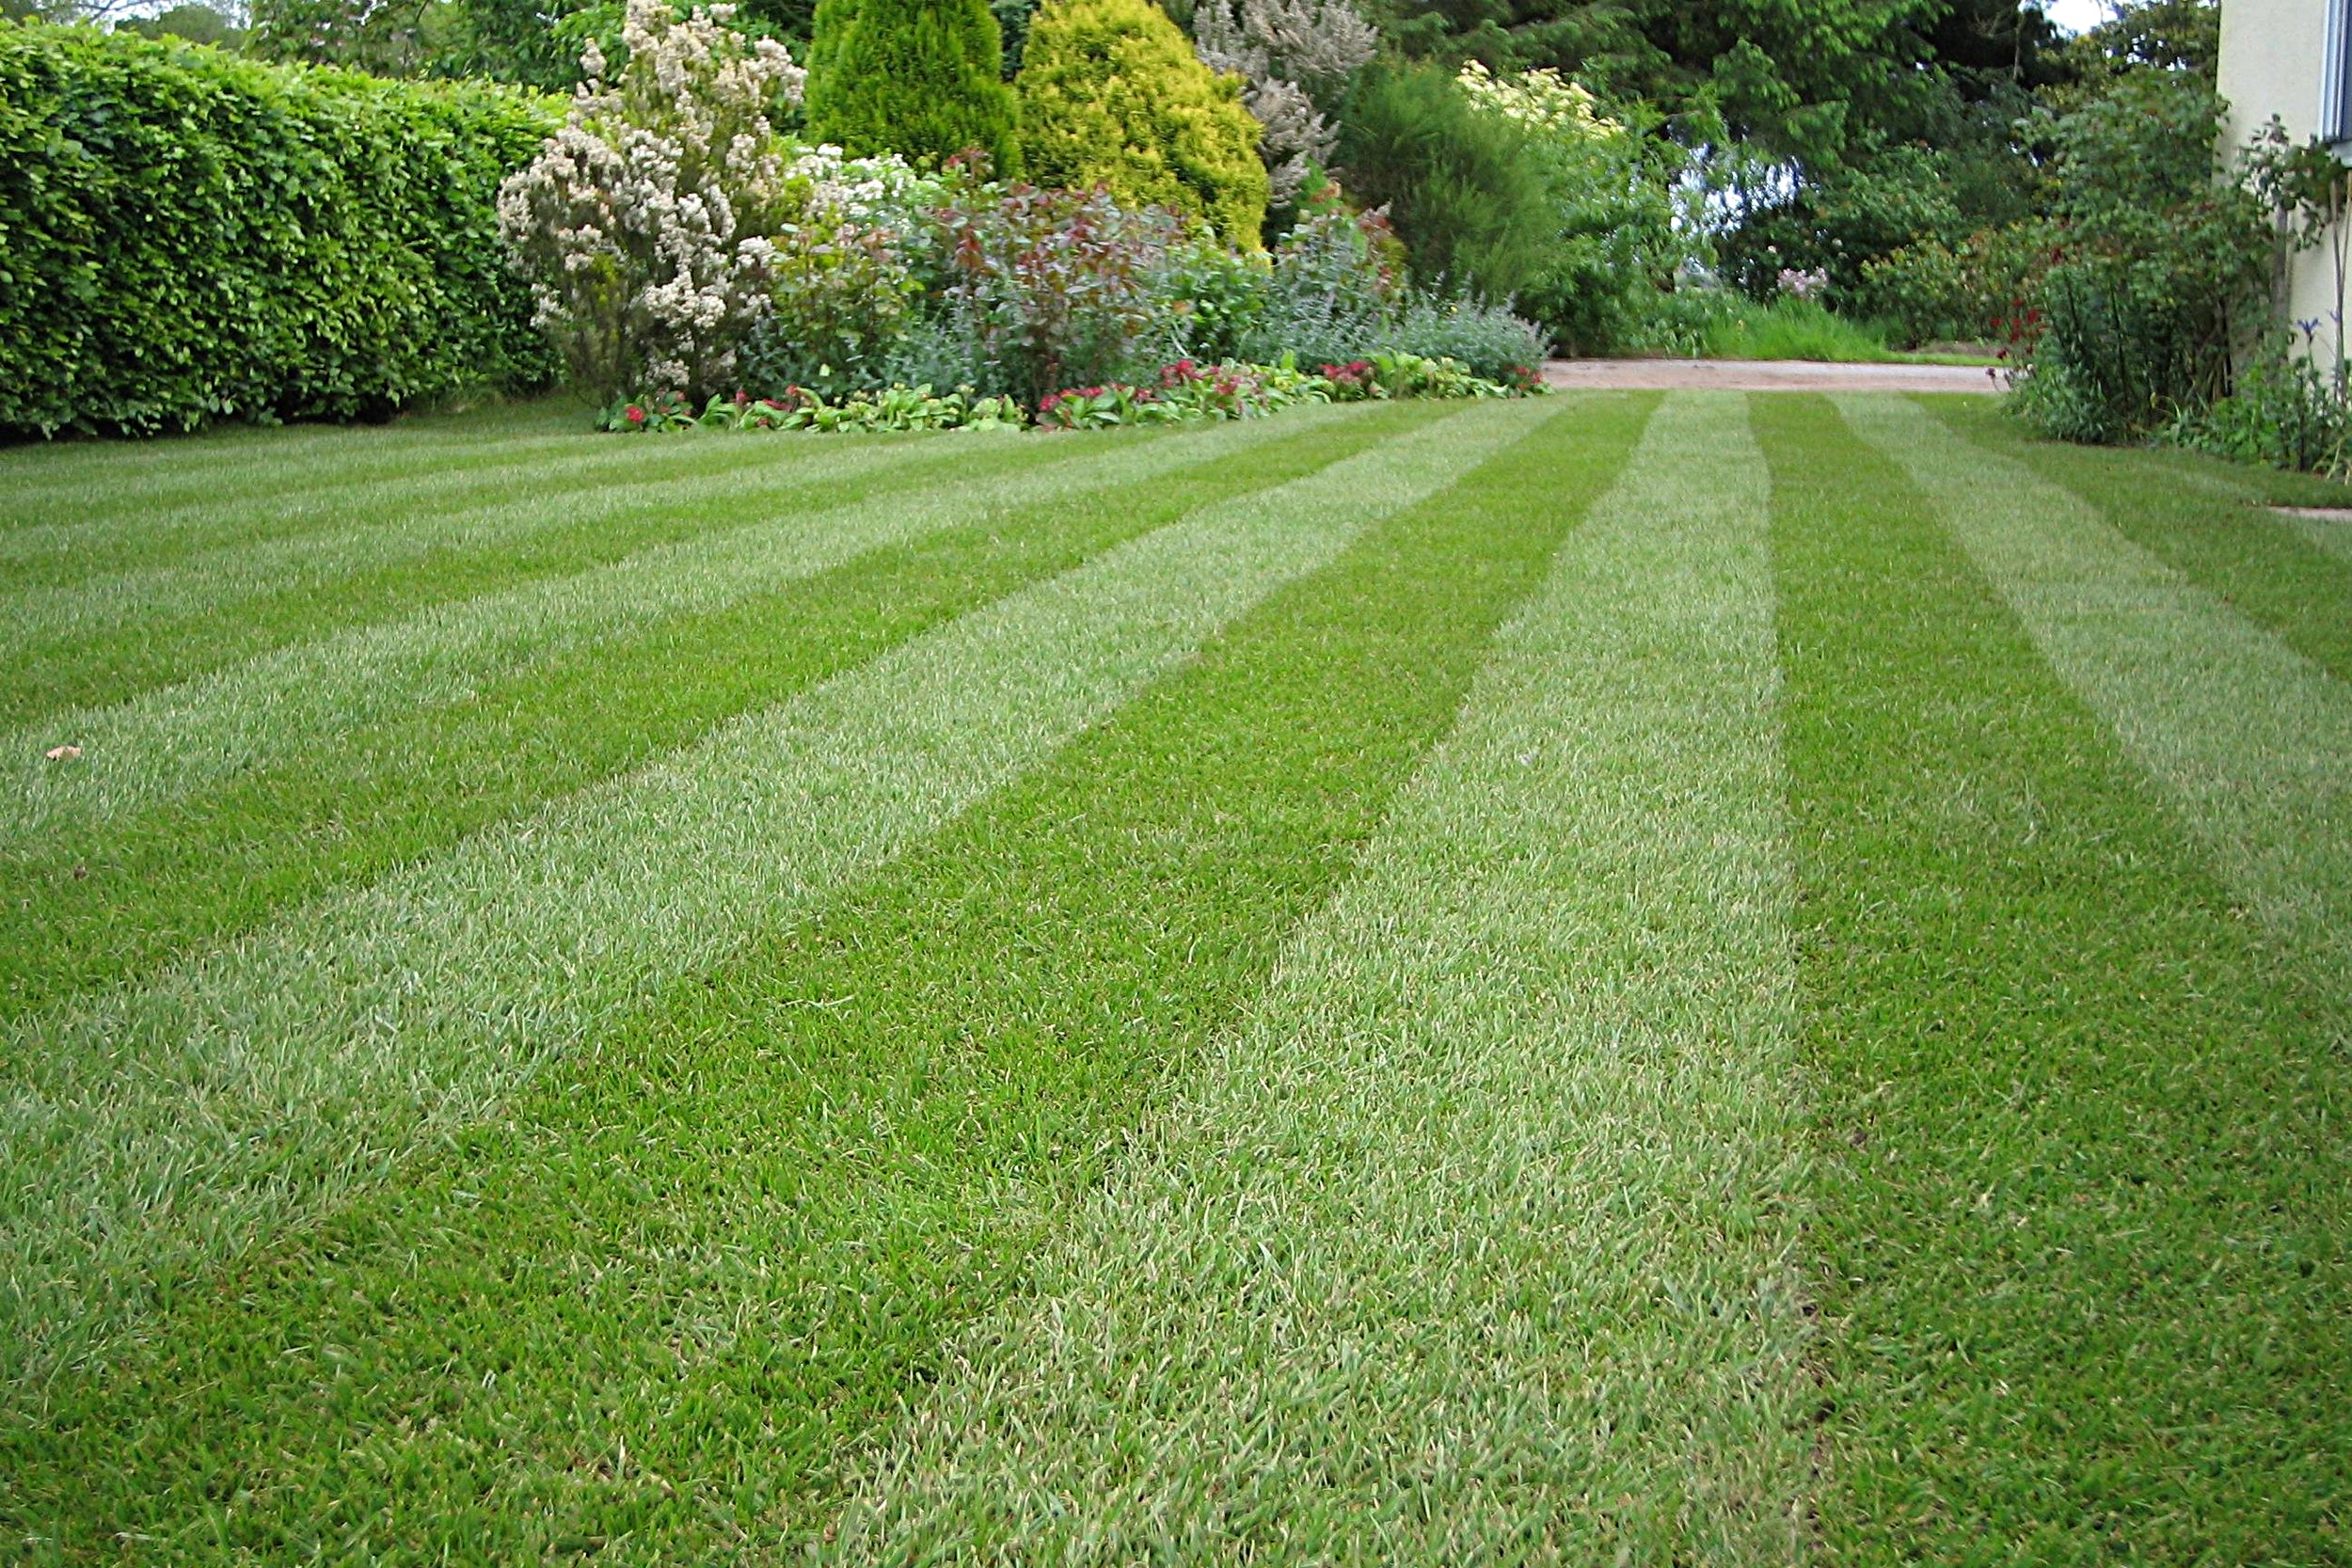 Lawn Care - From regular mowing to aeration and scarification, our garden maintenance team will carry out various procedures to keep your lawn in good condition.